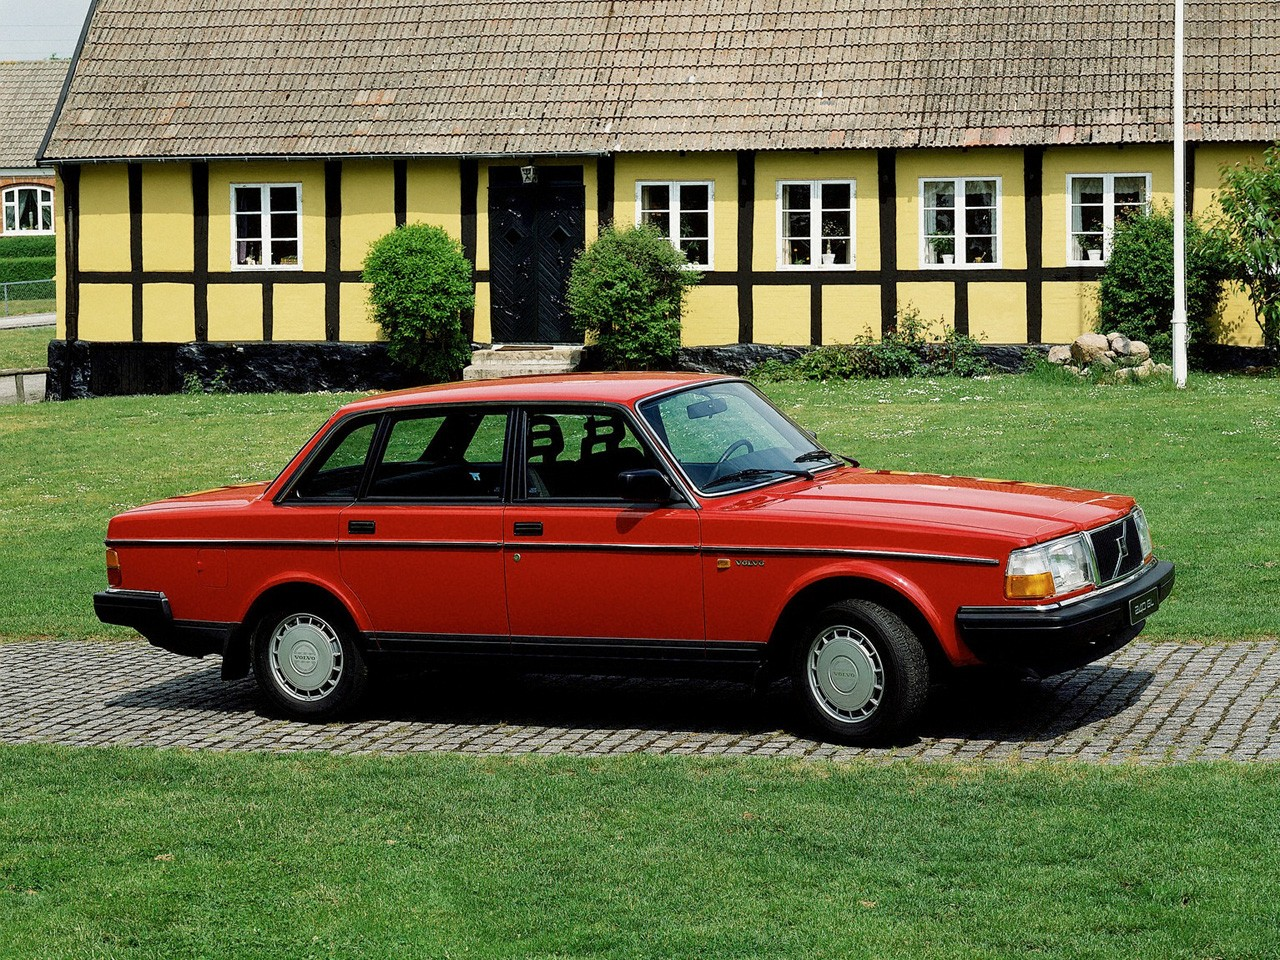 VOLVO 244 specs & photos - 1975, 1976, 1977, 1978, 1979, 1980, 1981, 1982, 1983, 1984, 1985 ...